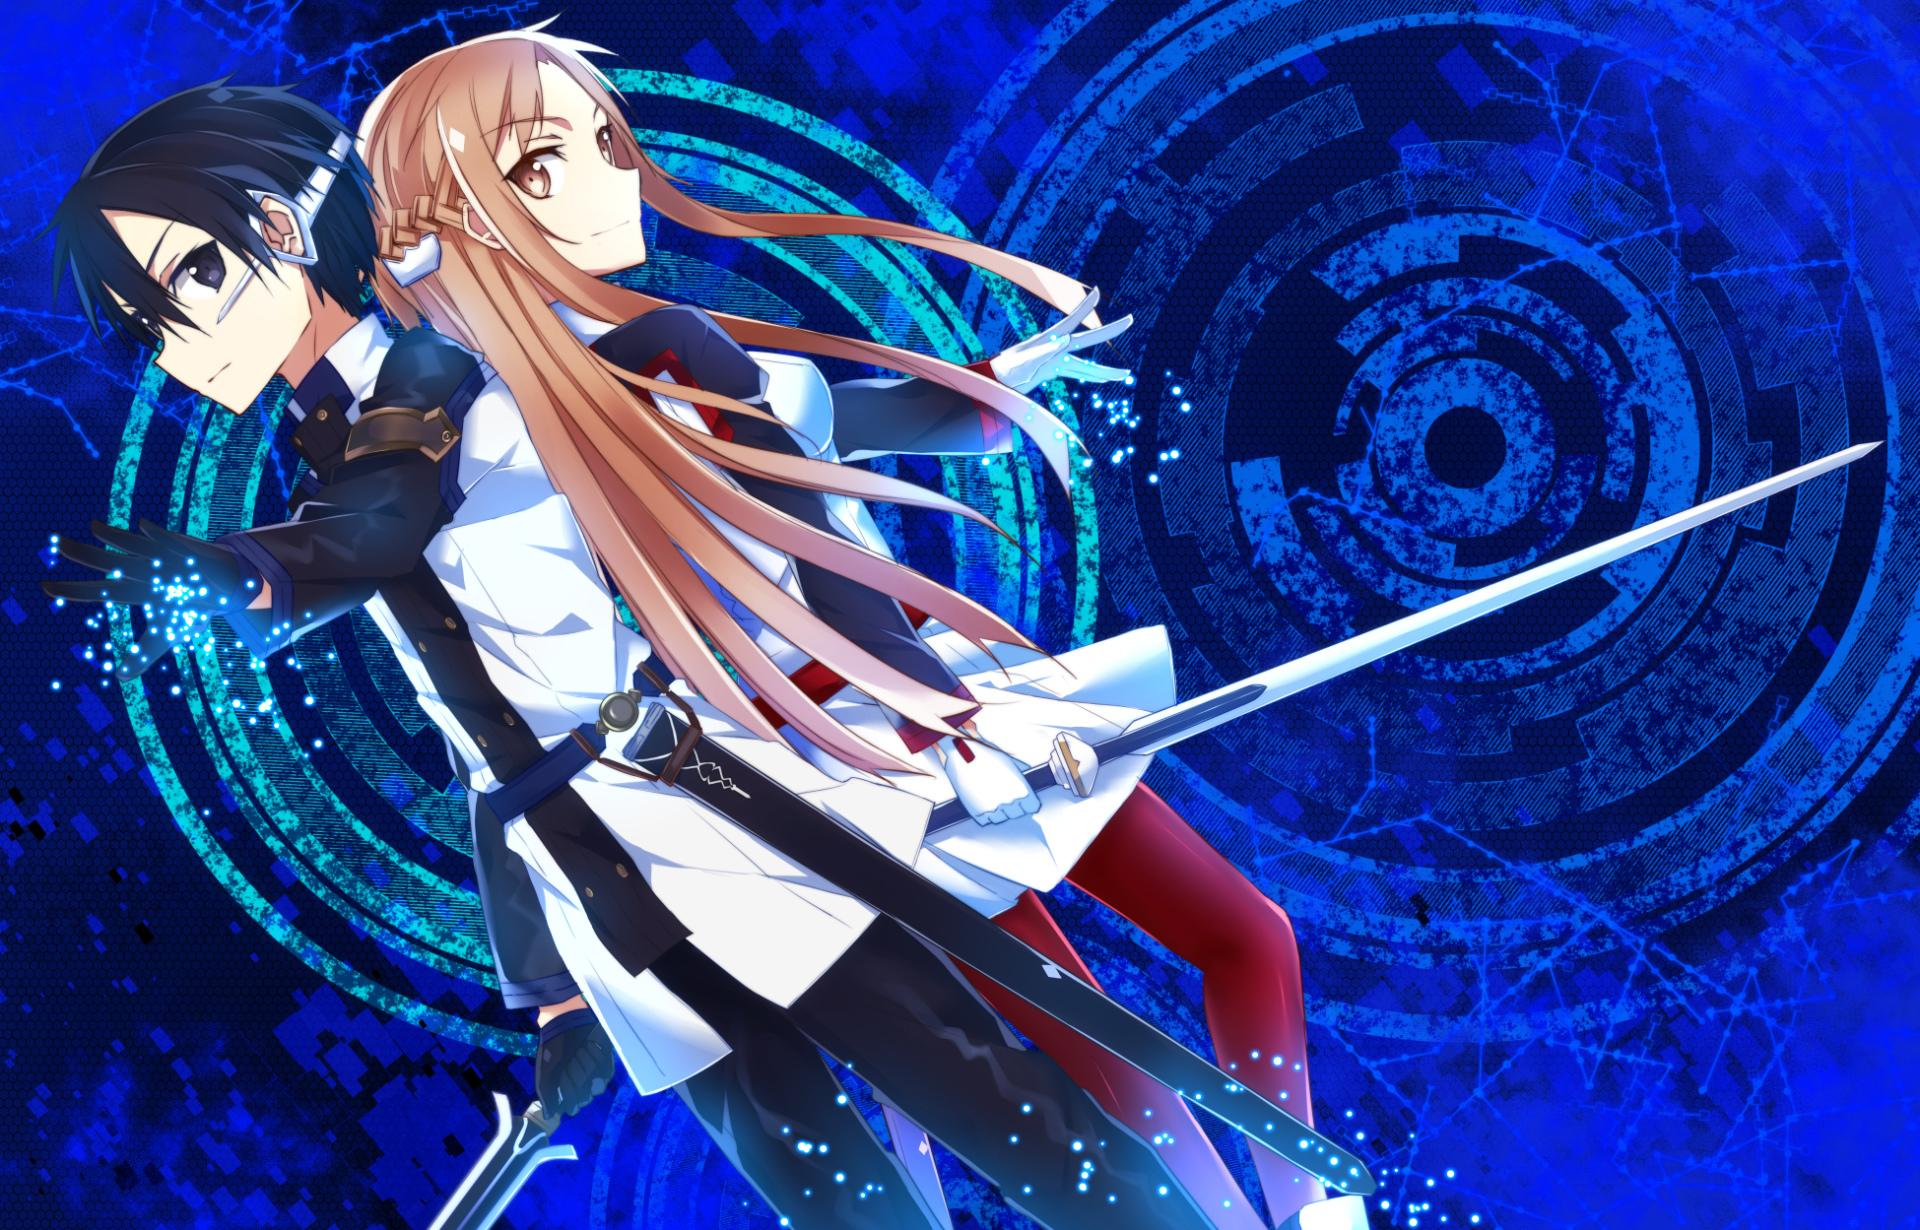 sword art online movie - photo #41